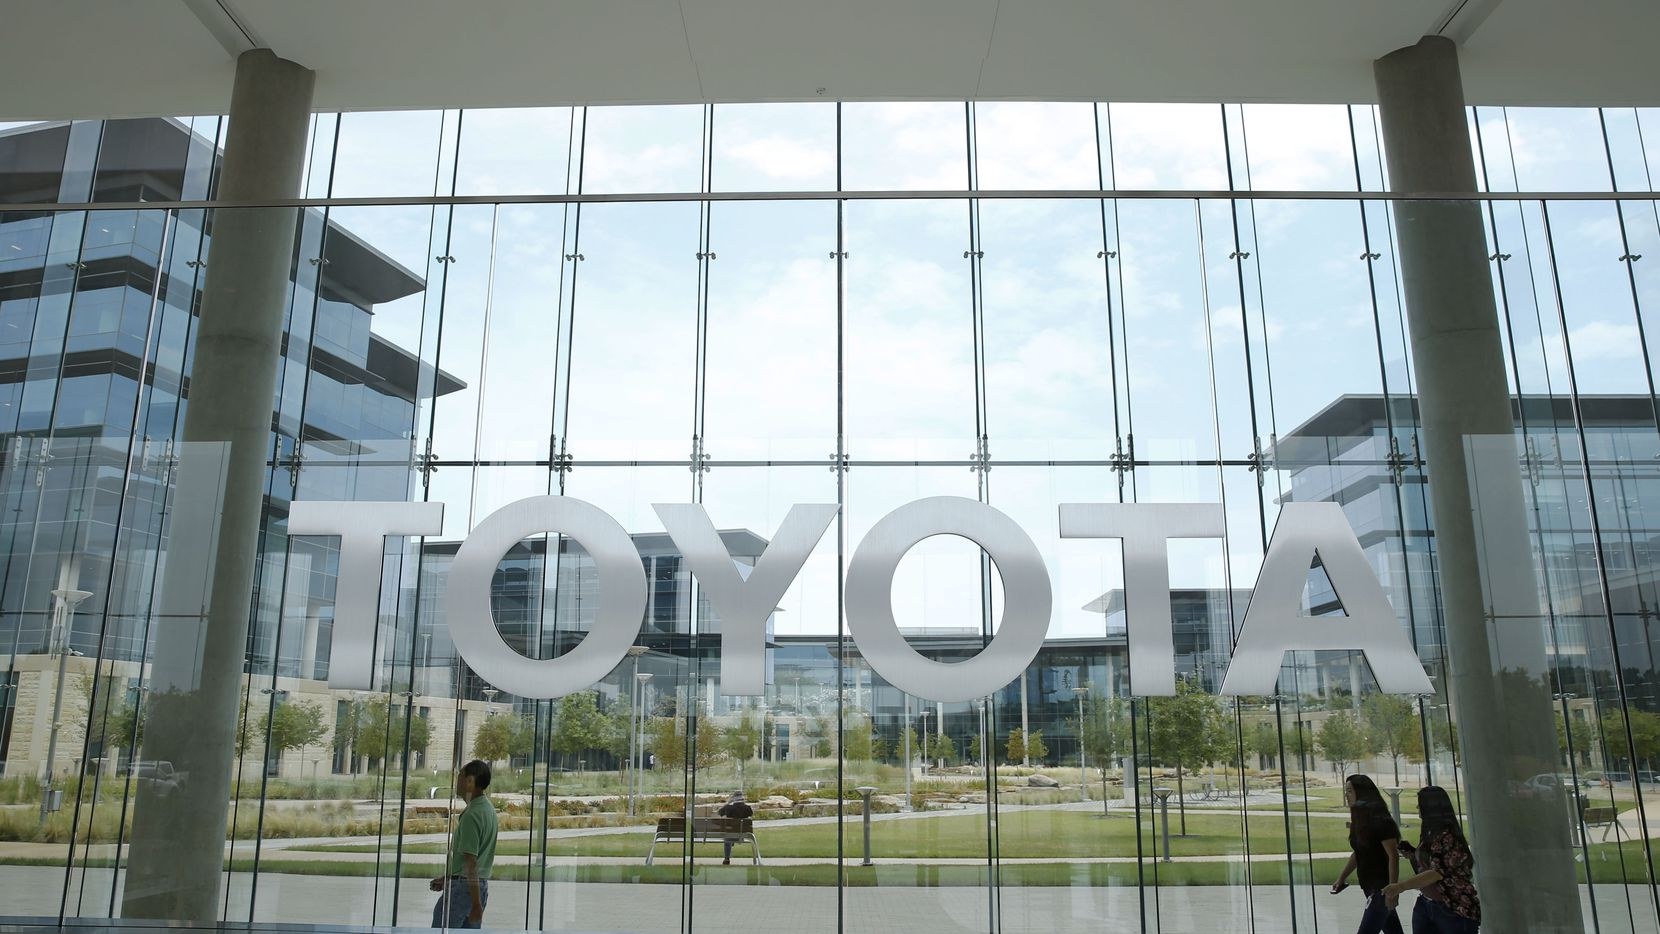 Toyota employees walked by the lobby area at Toyota Motors North America in Plano in 2018.